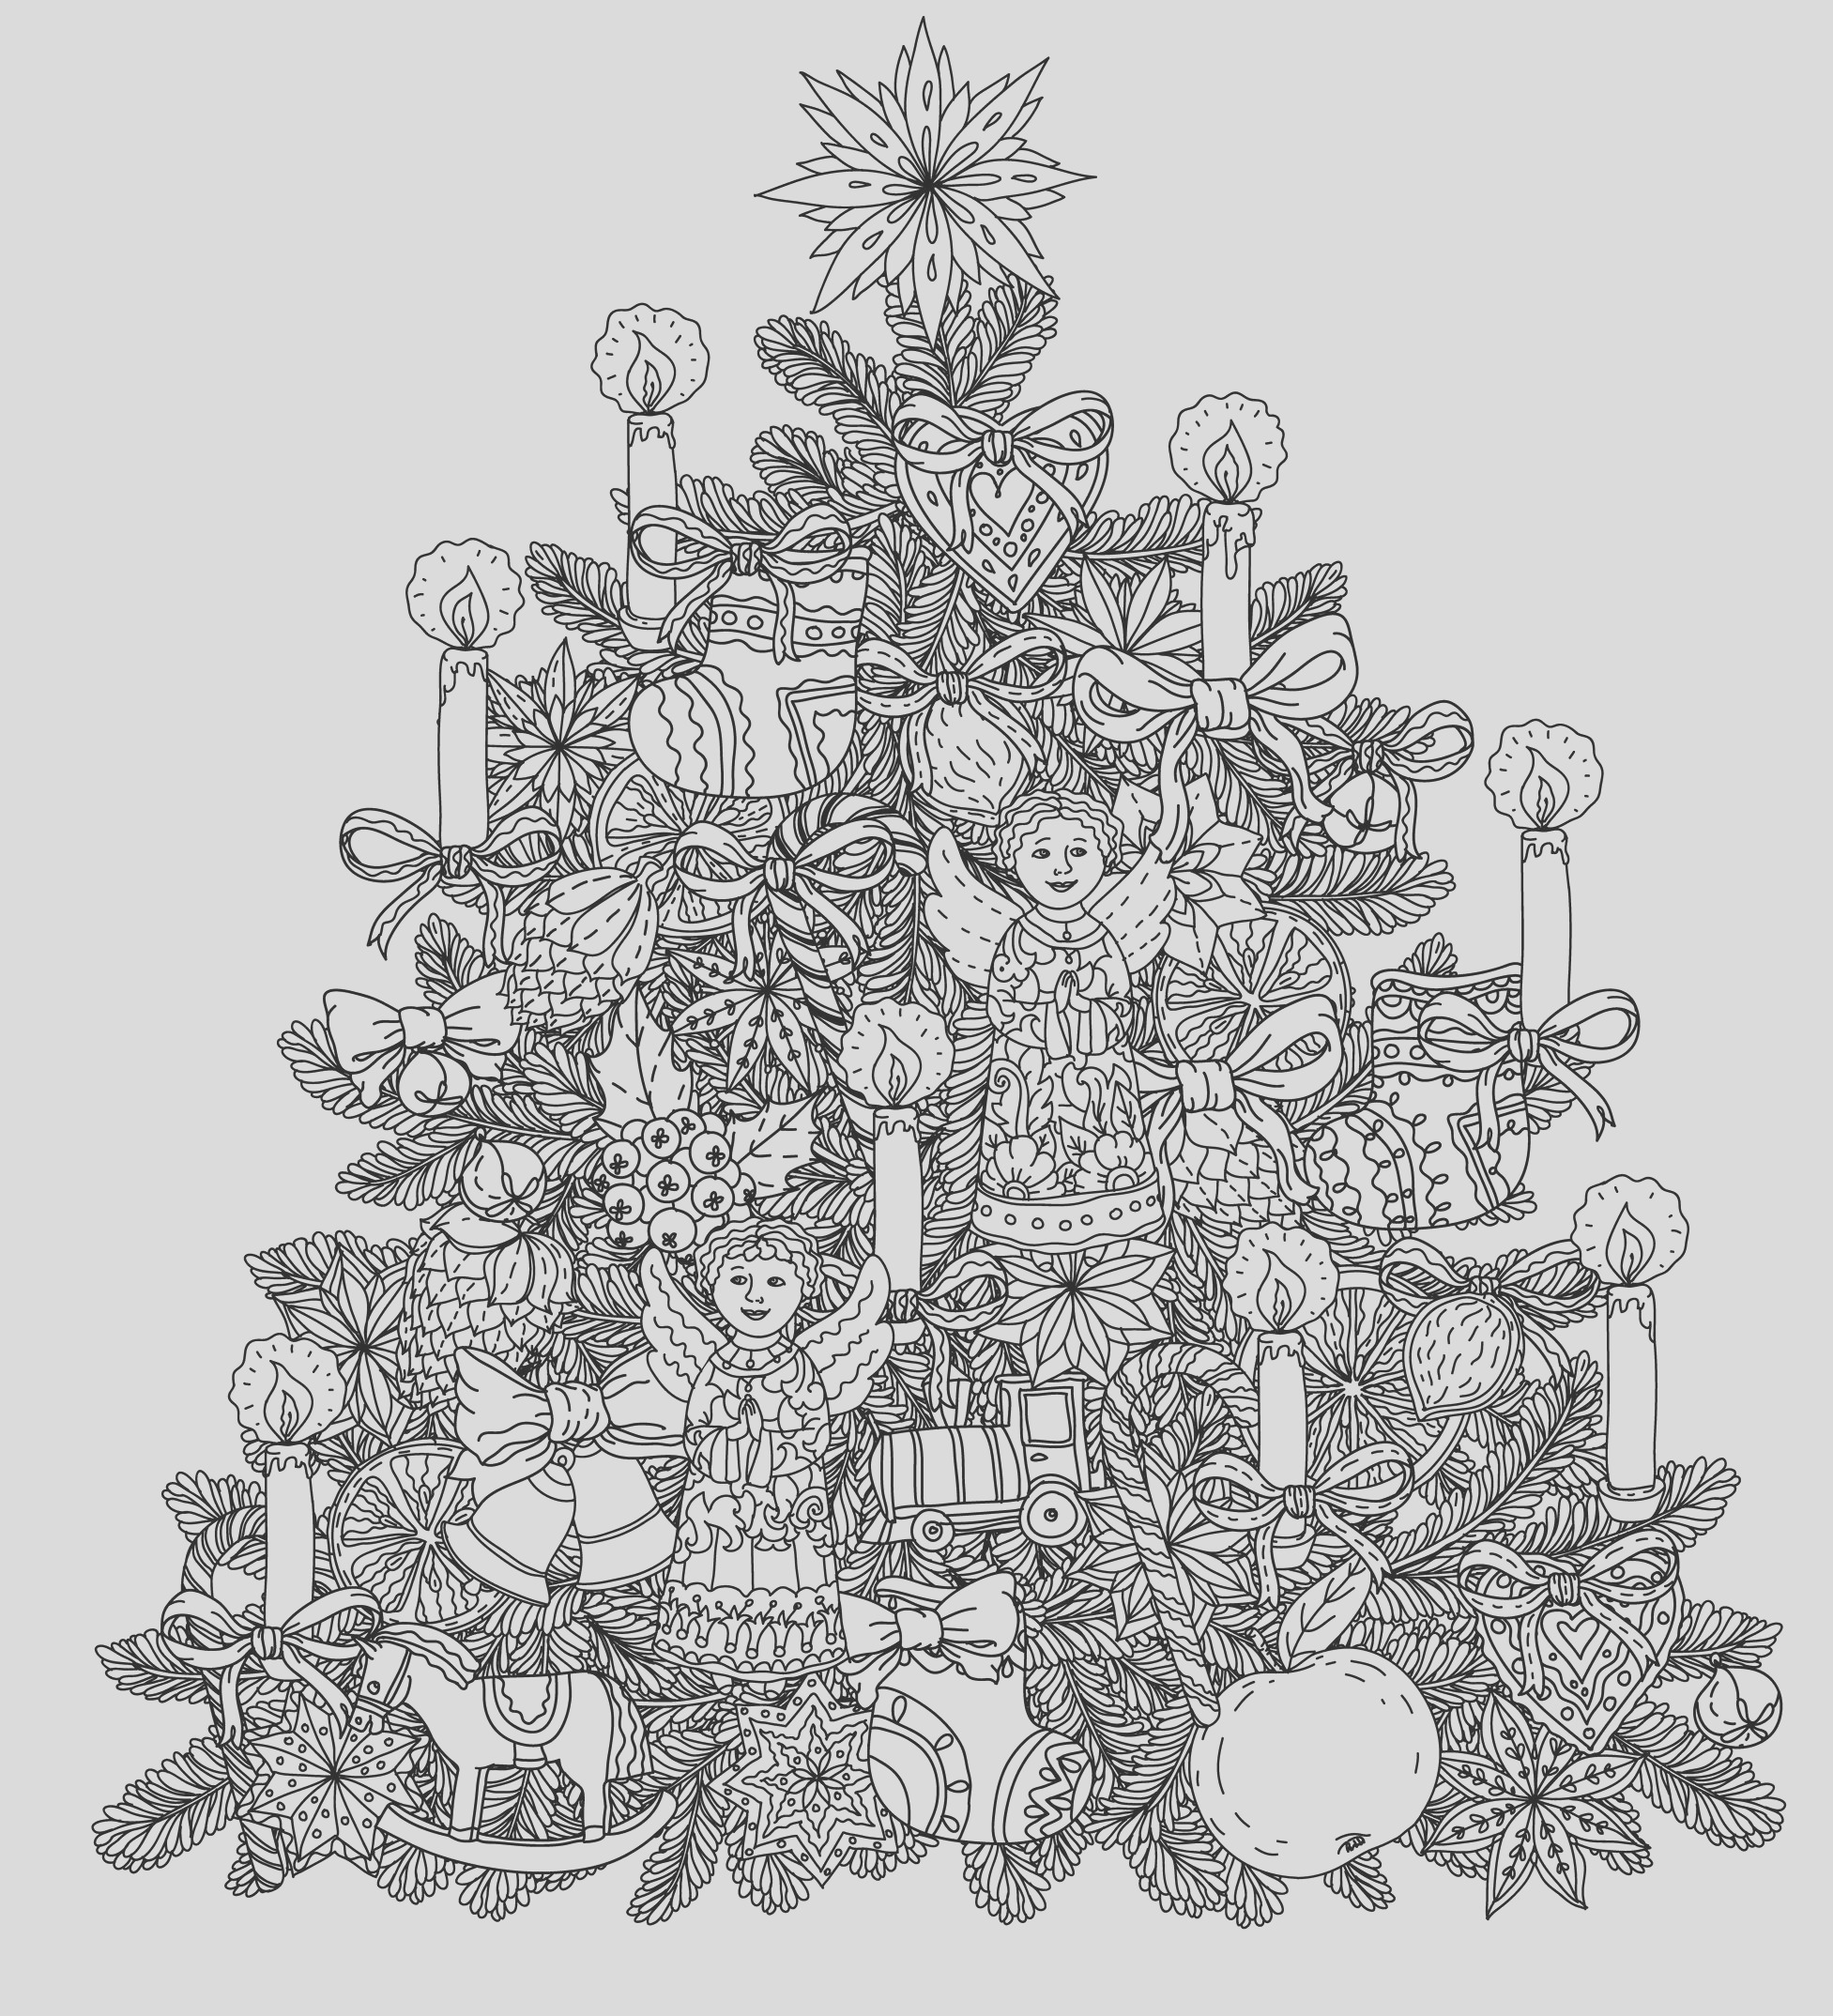 christmas adult coloring pages image=events christmas coloring adult christmas tree with ornaments by mashabr 1